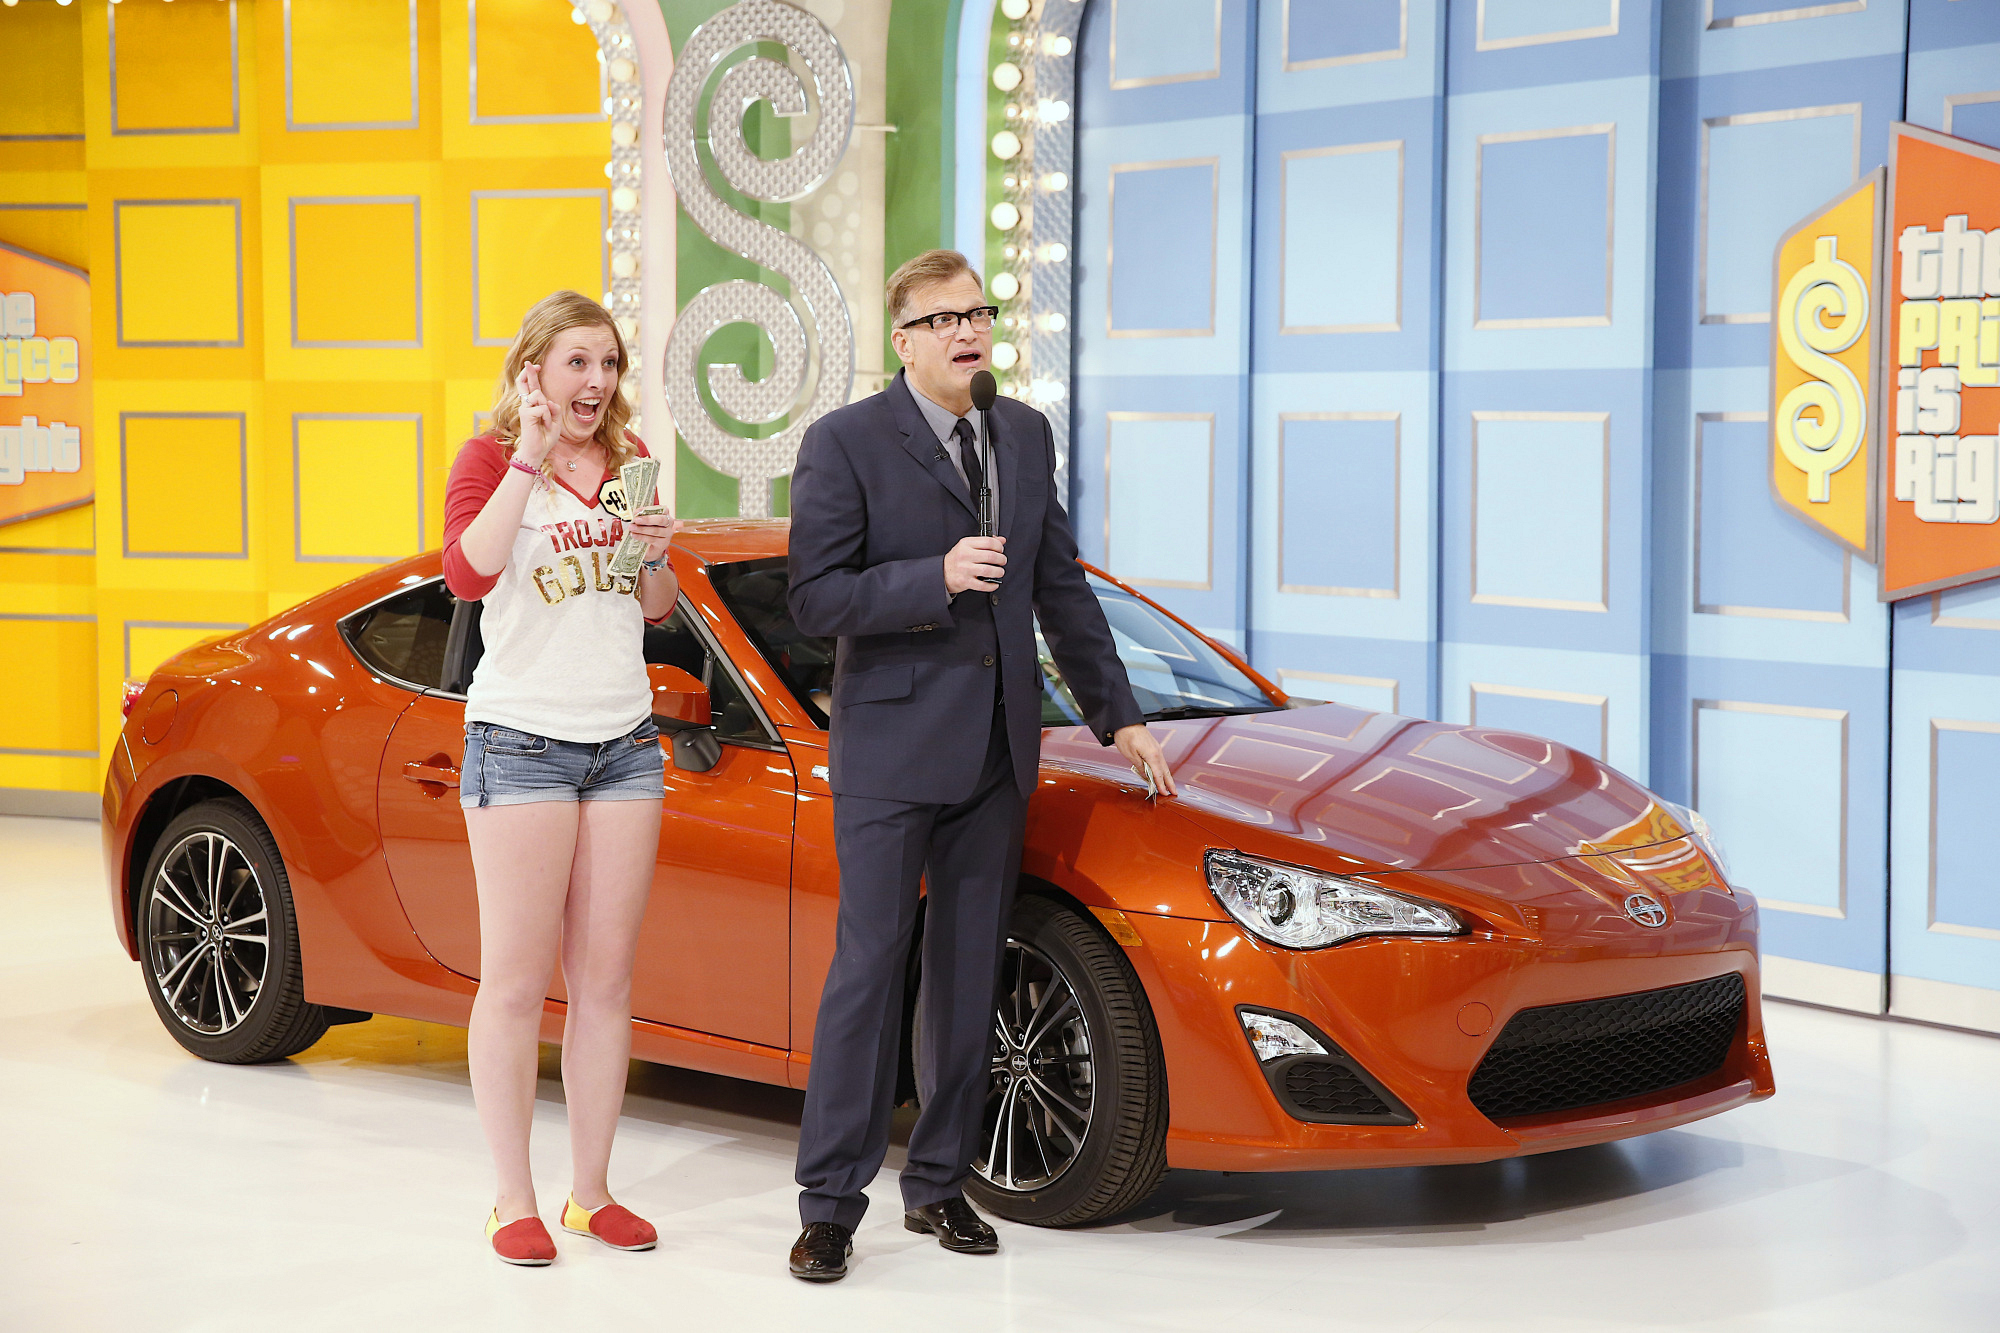 Drew, contestant, and a 2013 Scion FRS